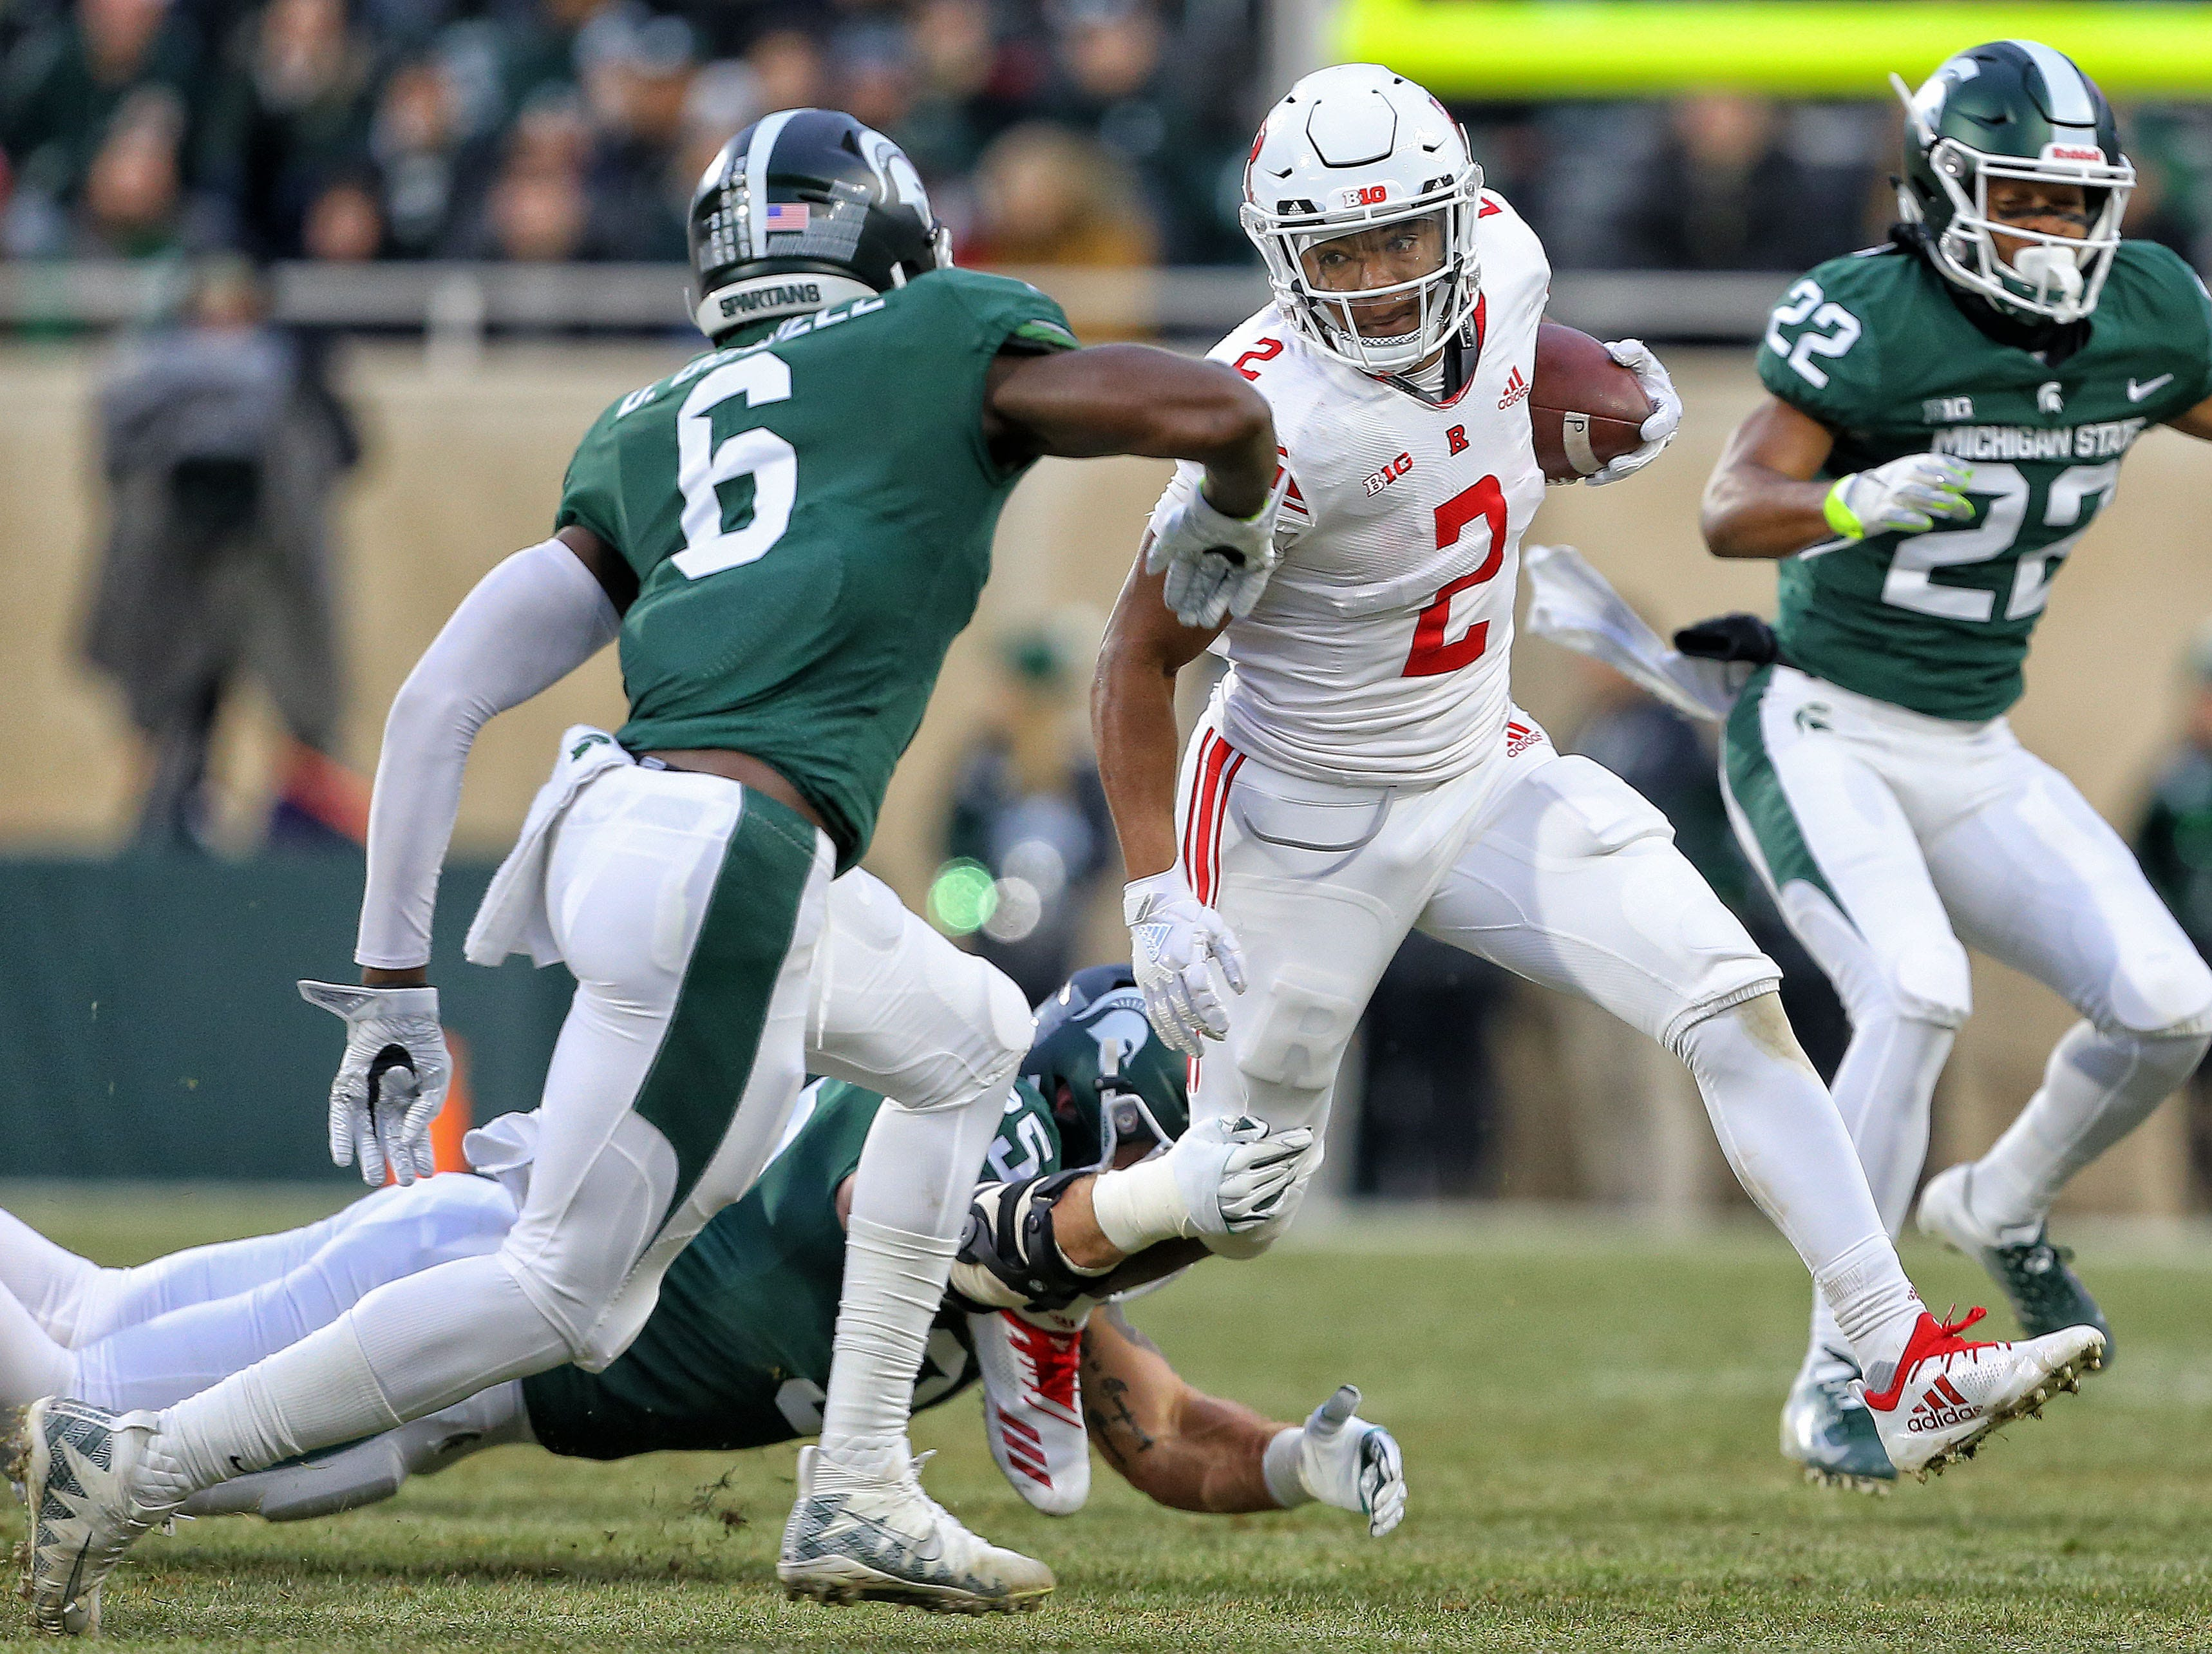 Nov 24, 2018; East Lansing, MI, USA; Rutgers Scarlet Knights running back Raheem Blackshear (2) runs the ball in front of Michigan State Spartans safety David Dowell (6) during the first quarter of a game at Spartan Stadium. Mandatory Credit: Mike Carter-USA TODAY Sports